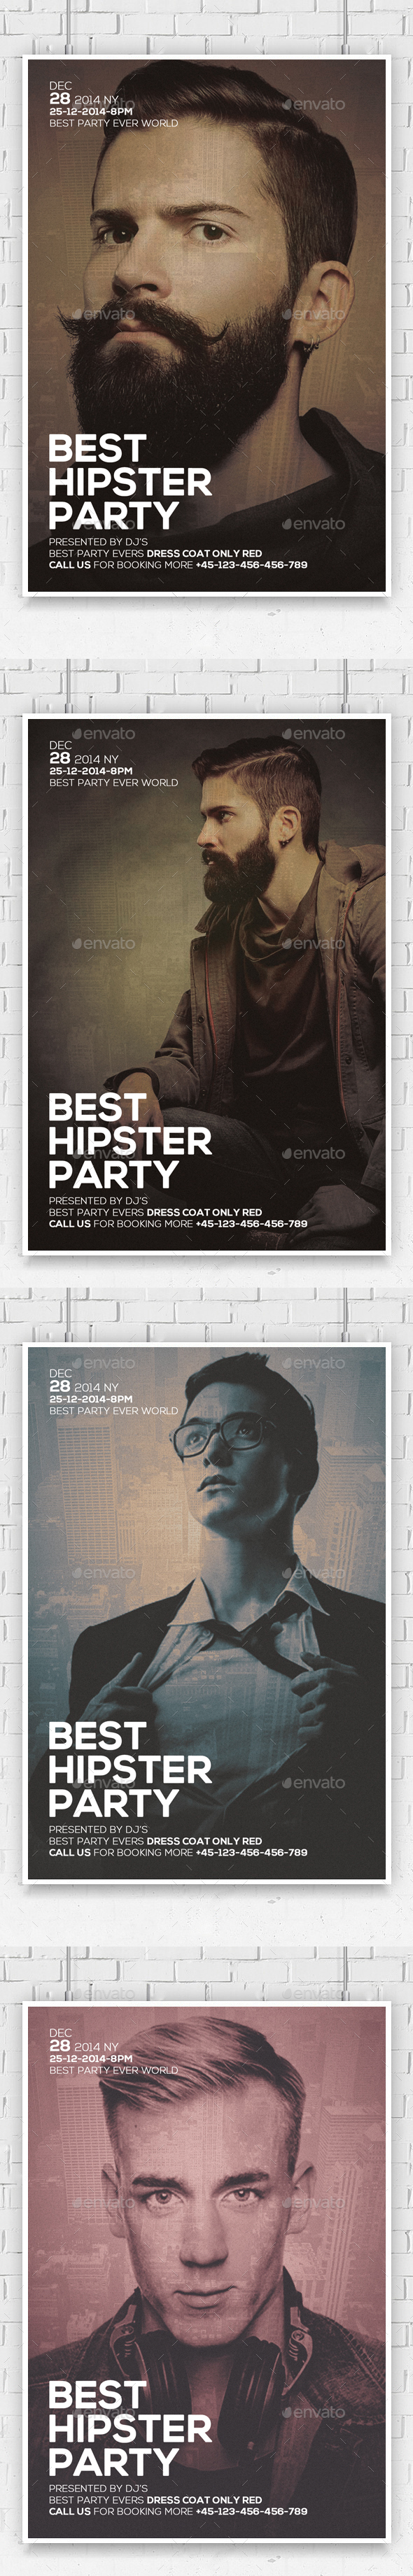 Vintage Hipster Party Flyers - Clubs & Parties Events